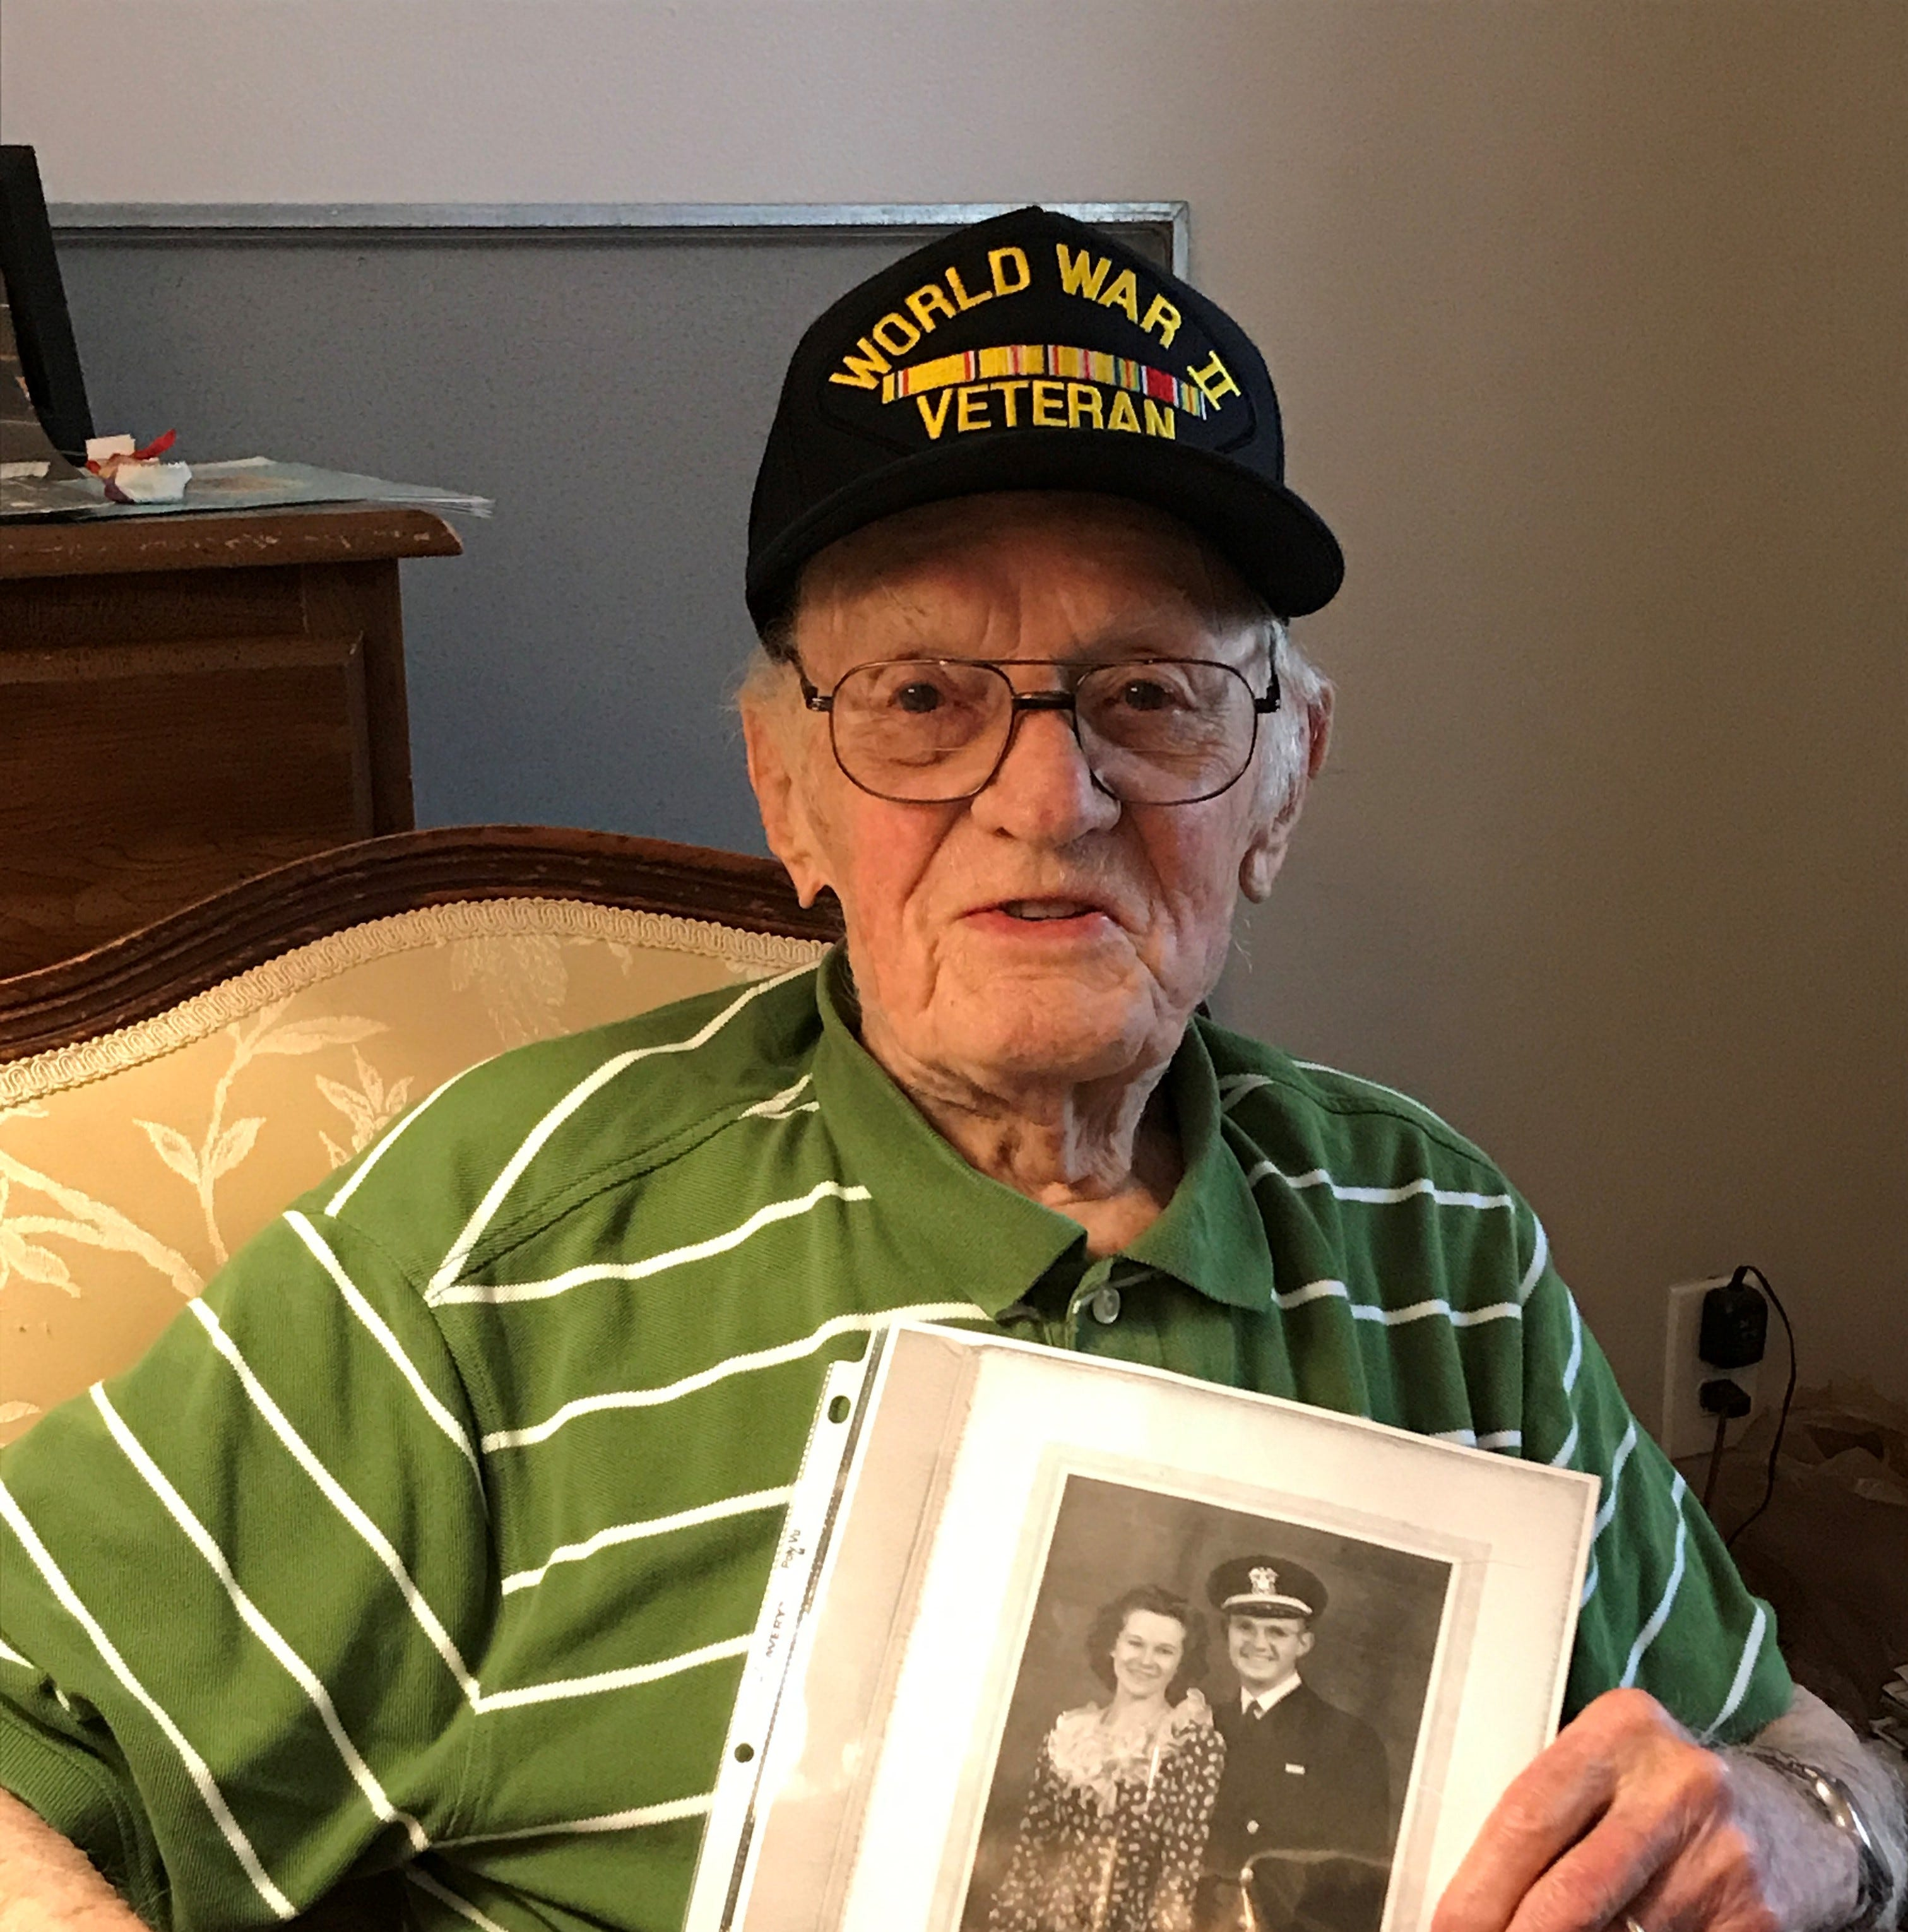 Stick your hand out and say 'Thank you for your service' to WWII veteran, 98